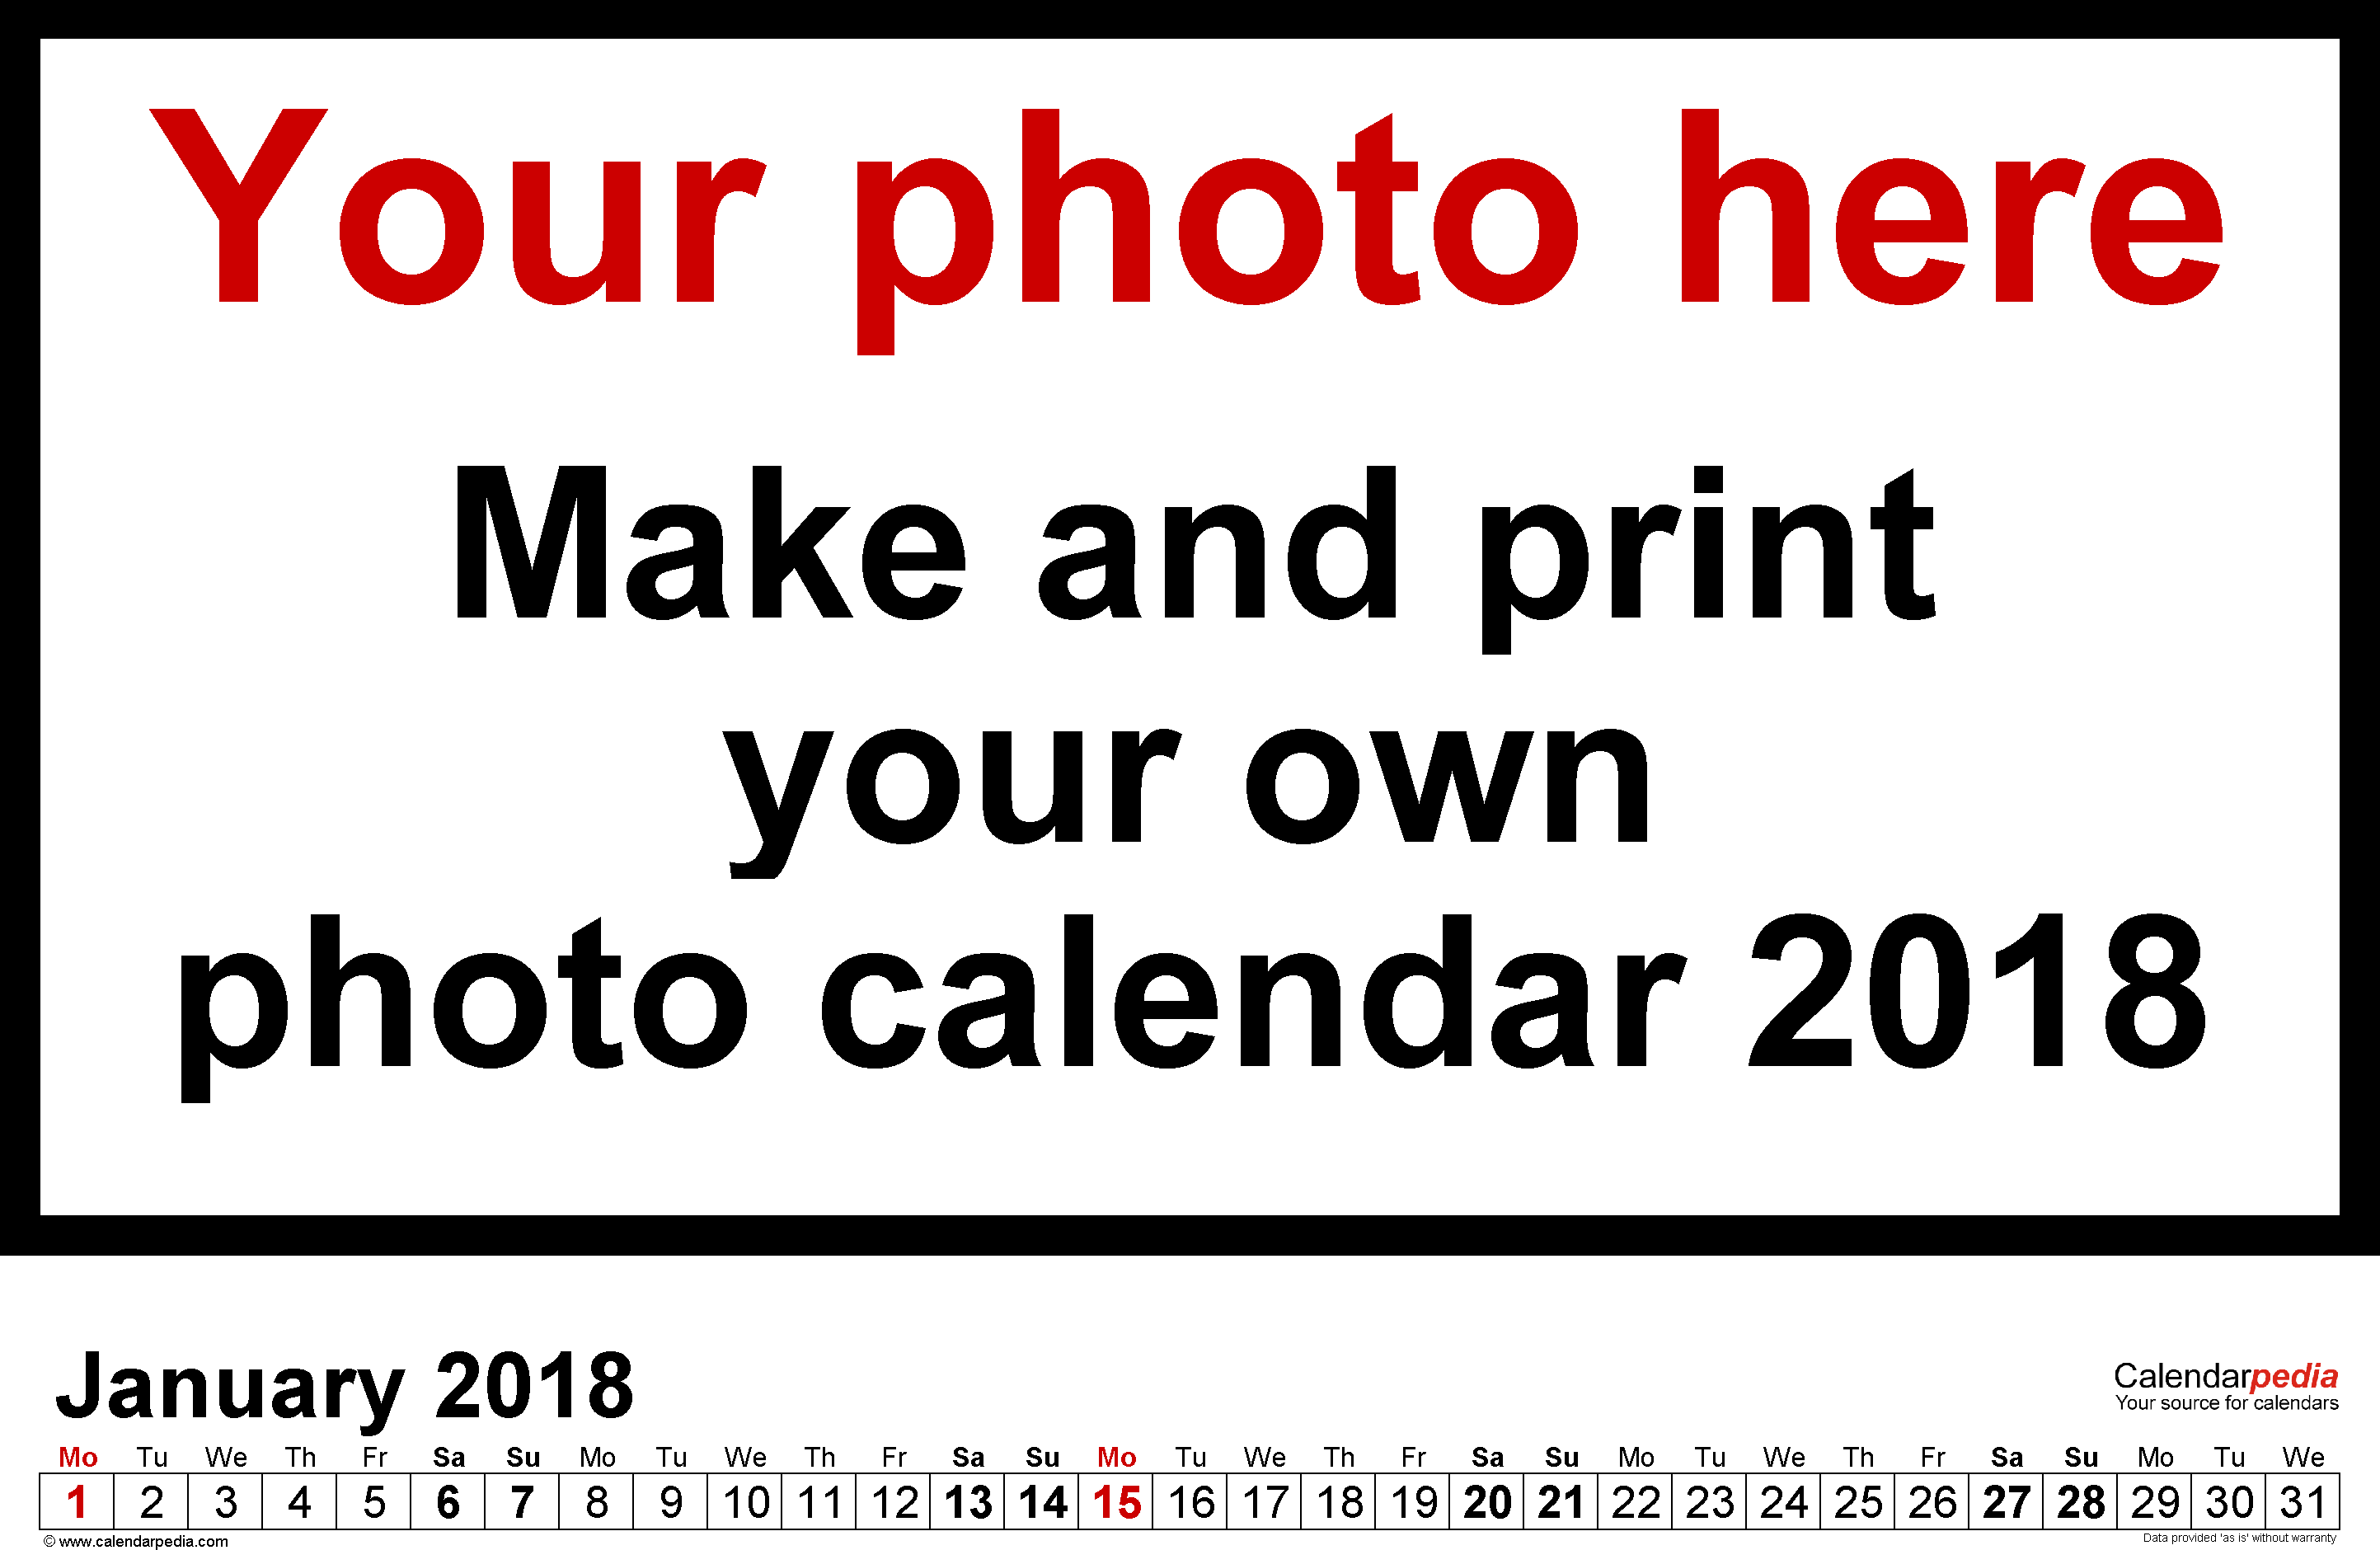 Template 5: Photo calendar 2018 for PDF, 12 pages, landscape format